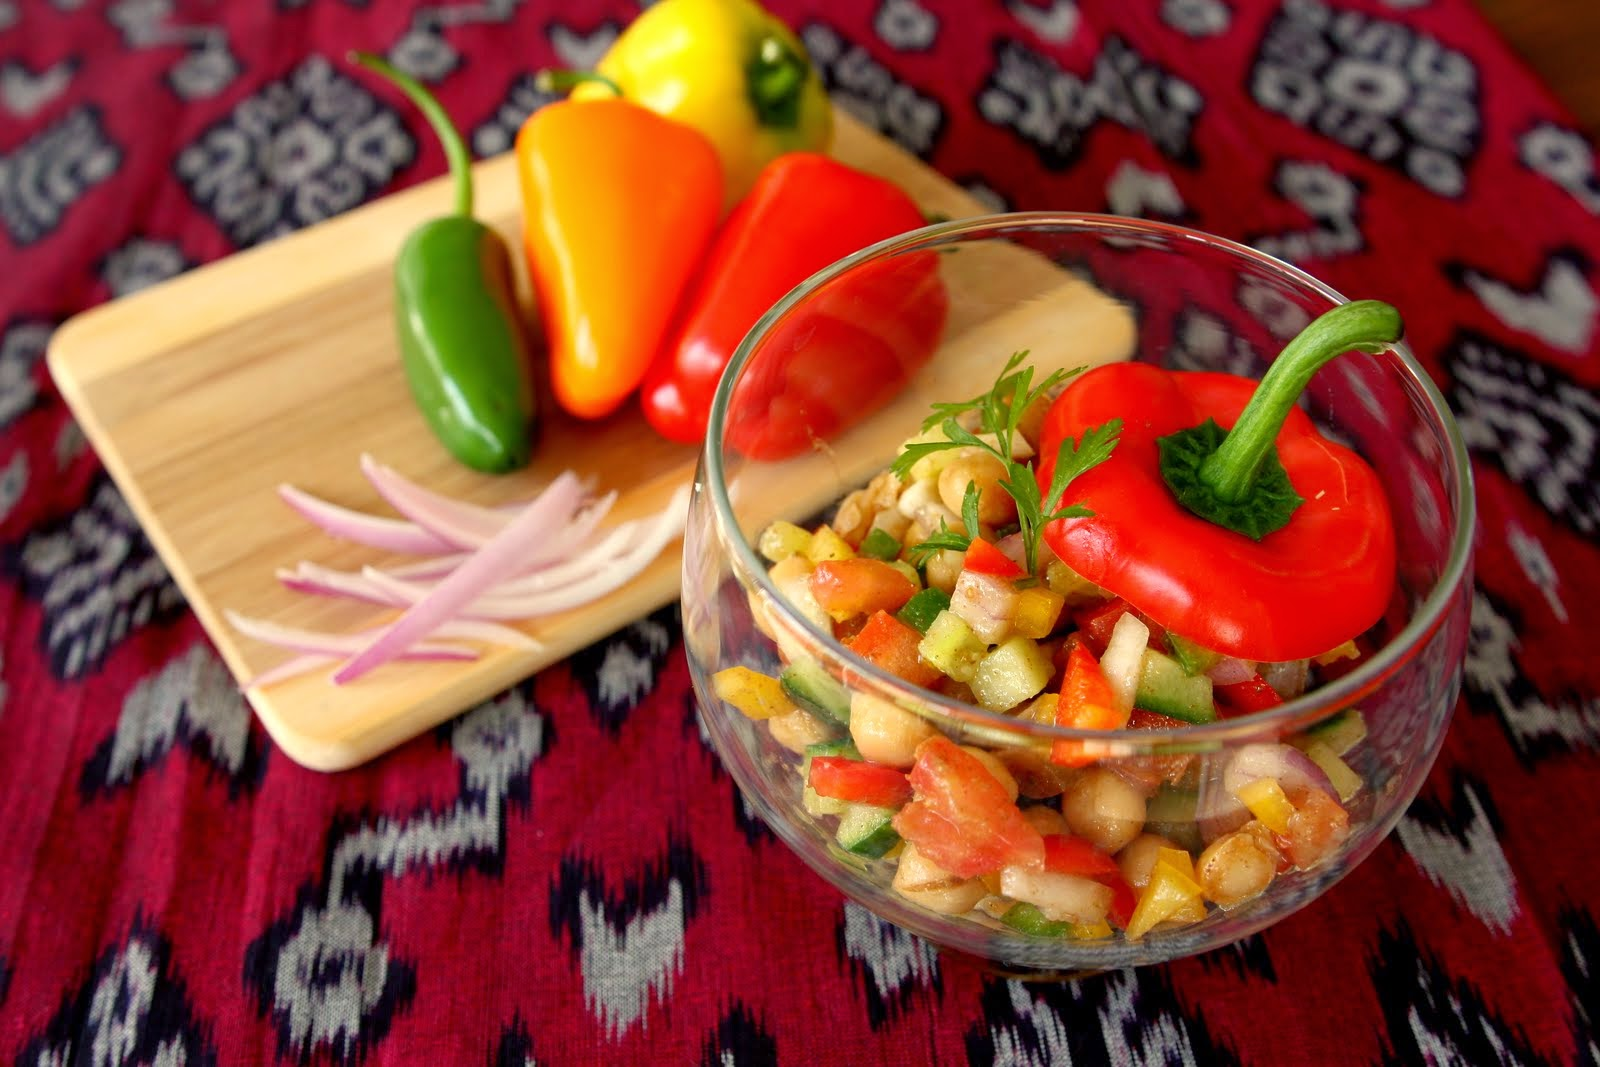 Indian Chick Peas Salad with Mango Powder (Chana chaat)